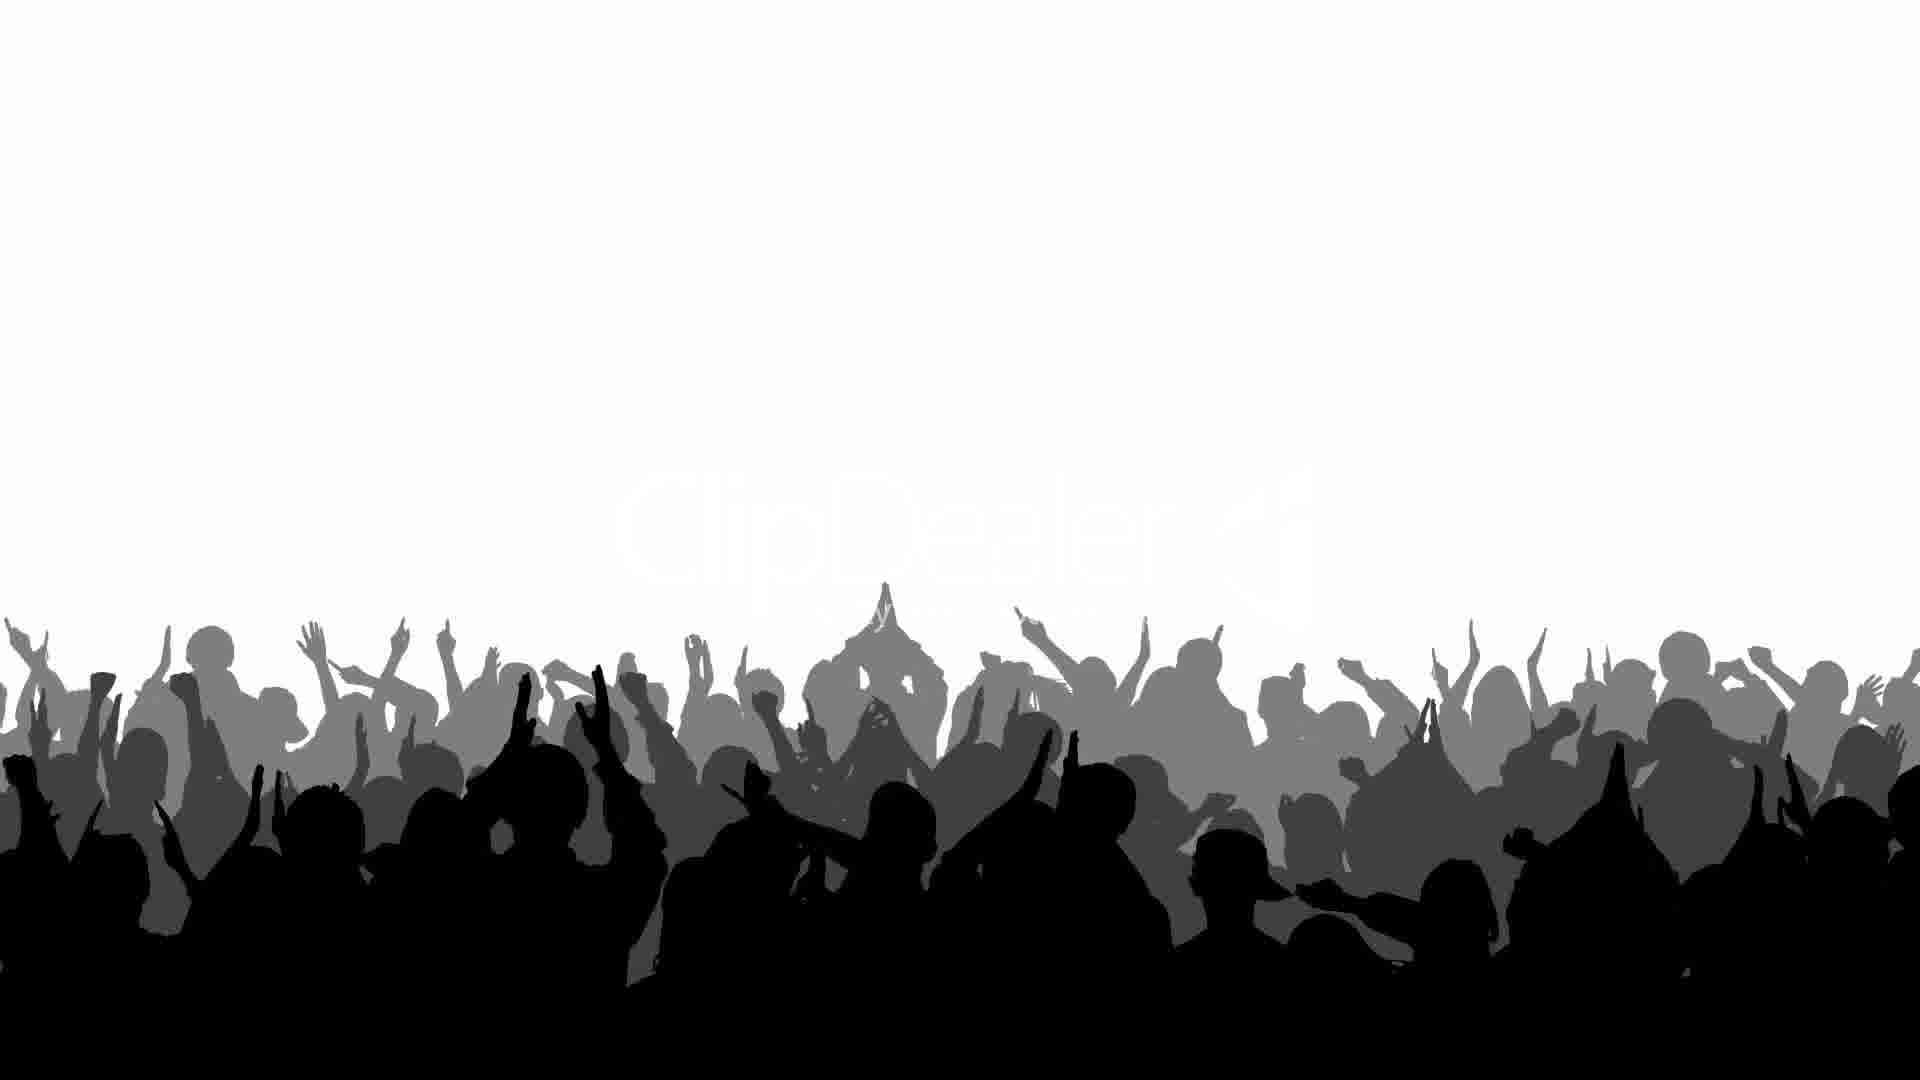 Crowd Silhouette Transparent images  Hd Image Galleries